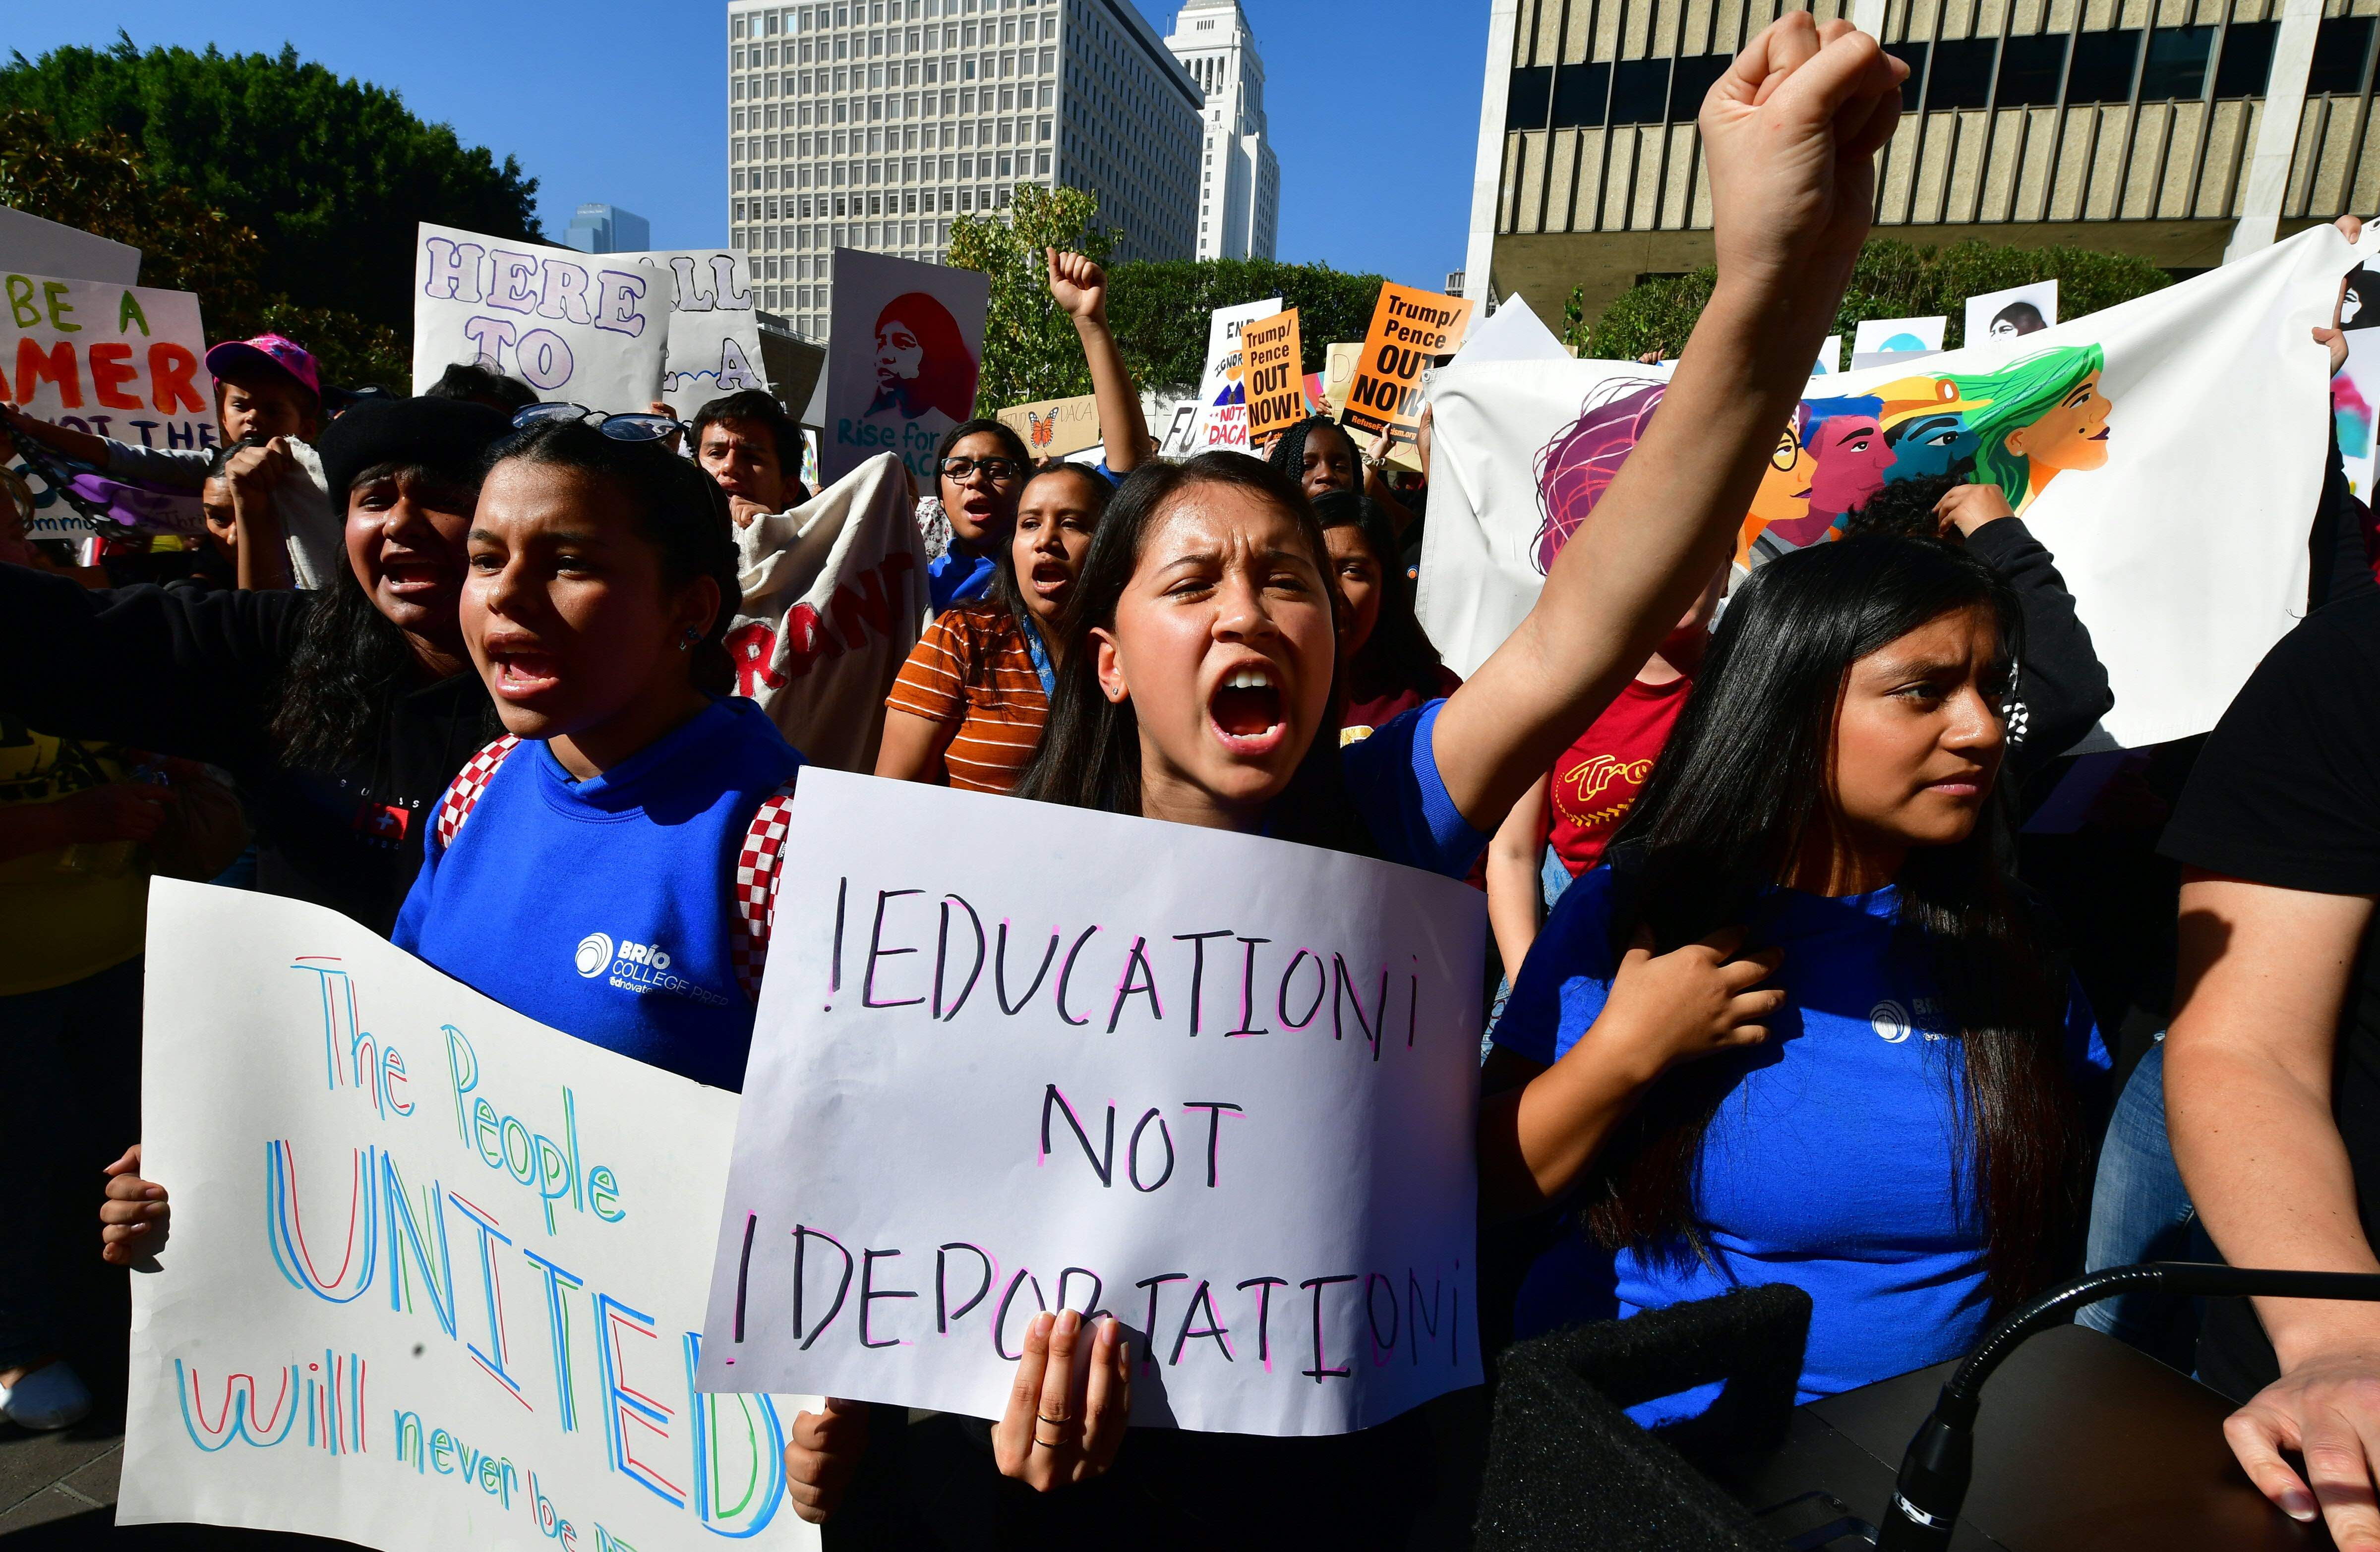 """Students and supporters of Deferred Action for Childhood Arrivals rally in downtown Los Angeles on Nov. 12, 2019, as the U.S. Supreme Court hears arguments to make a decision regarding the future of """"Dreamers,"""" an estimated 700,000 people brought to the country illegally as children but allowed to stay and work under a program created by former President Barack Obama. The program came under attack from President Donald Trump who wants it terminated, and expired last year after Congress failed to come up with a replacement."""